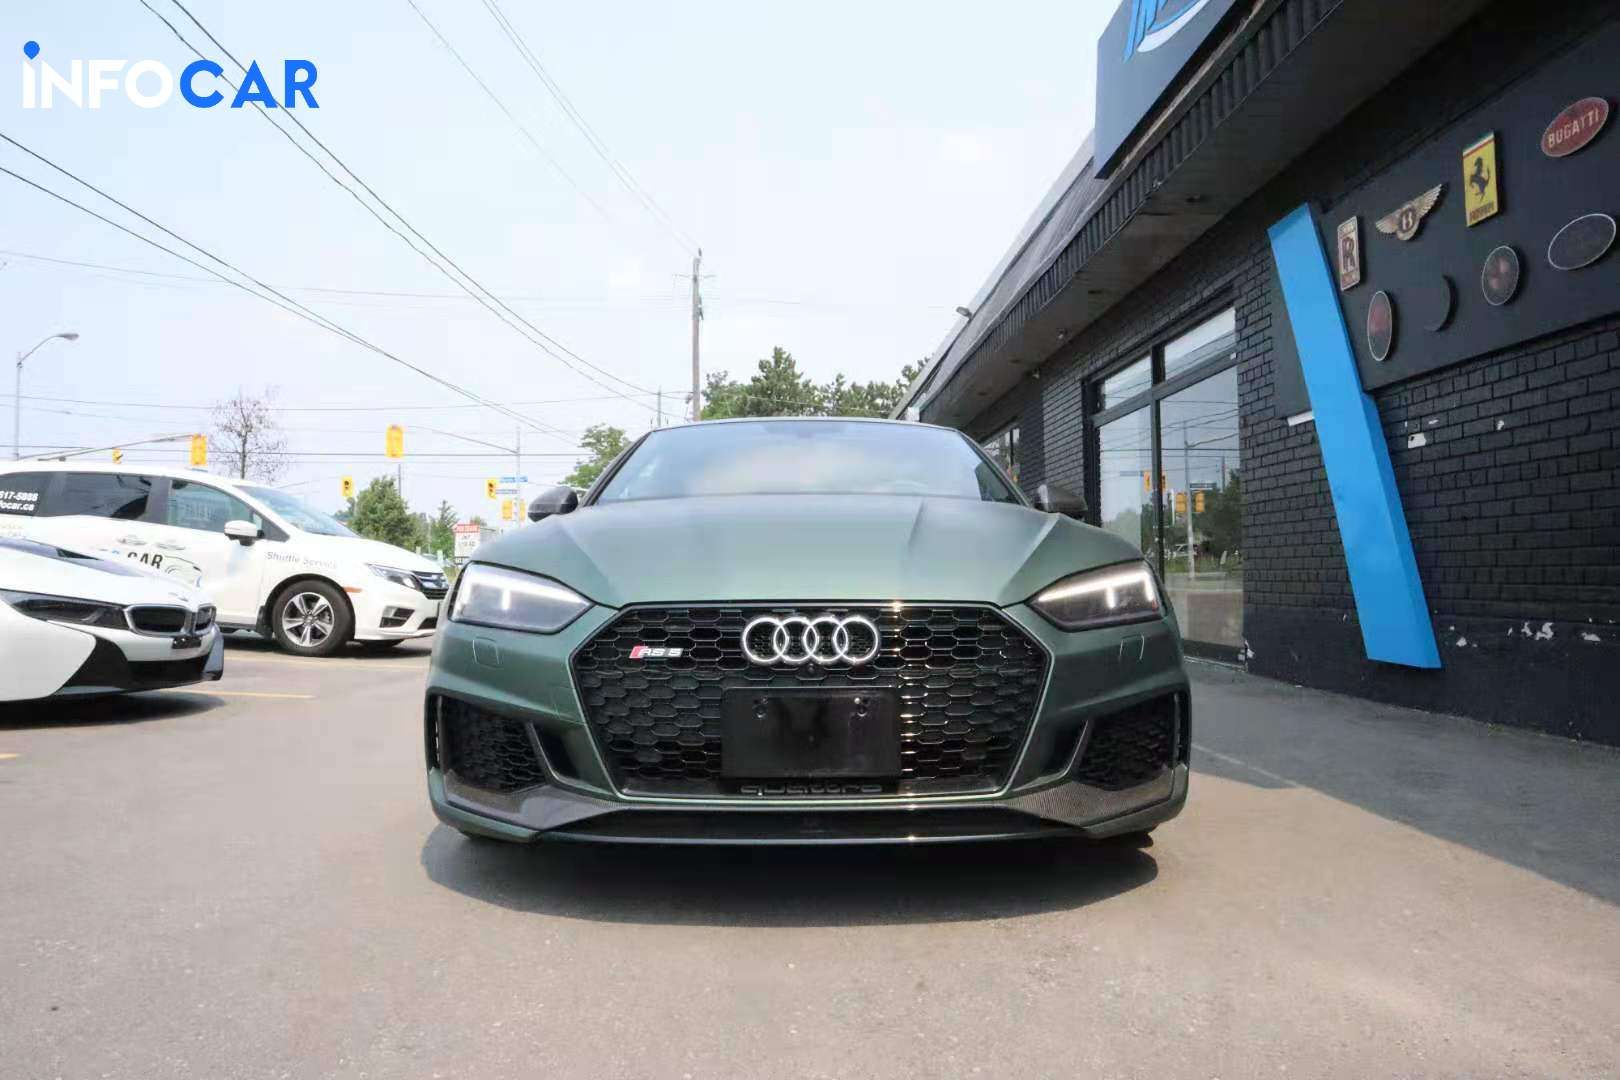 2018 Audi RS 5 coupe - INFOCAR - Toronto's Most Comprehensive New and Used Auto Trading Platform